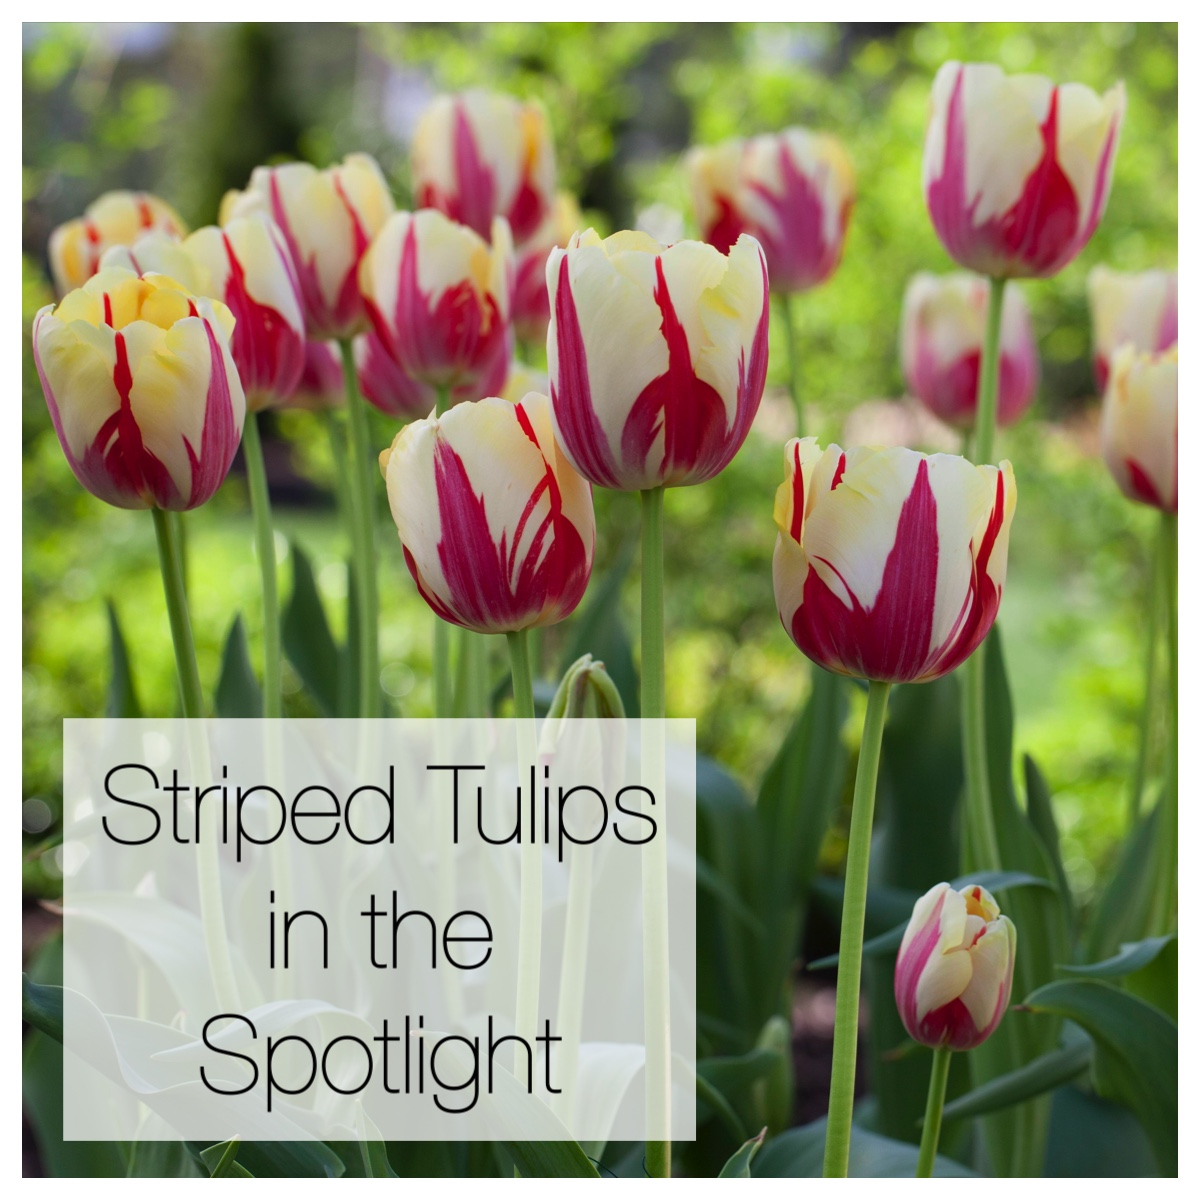 Striped Tulips in the Spotlight